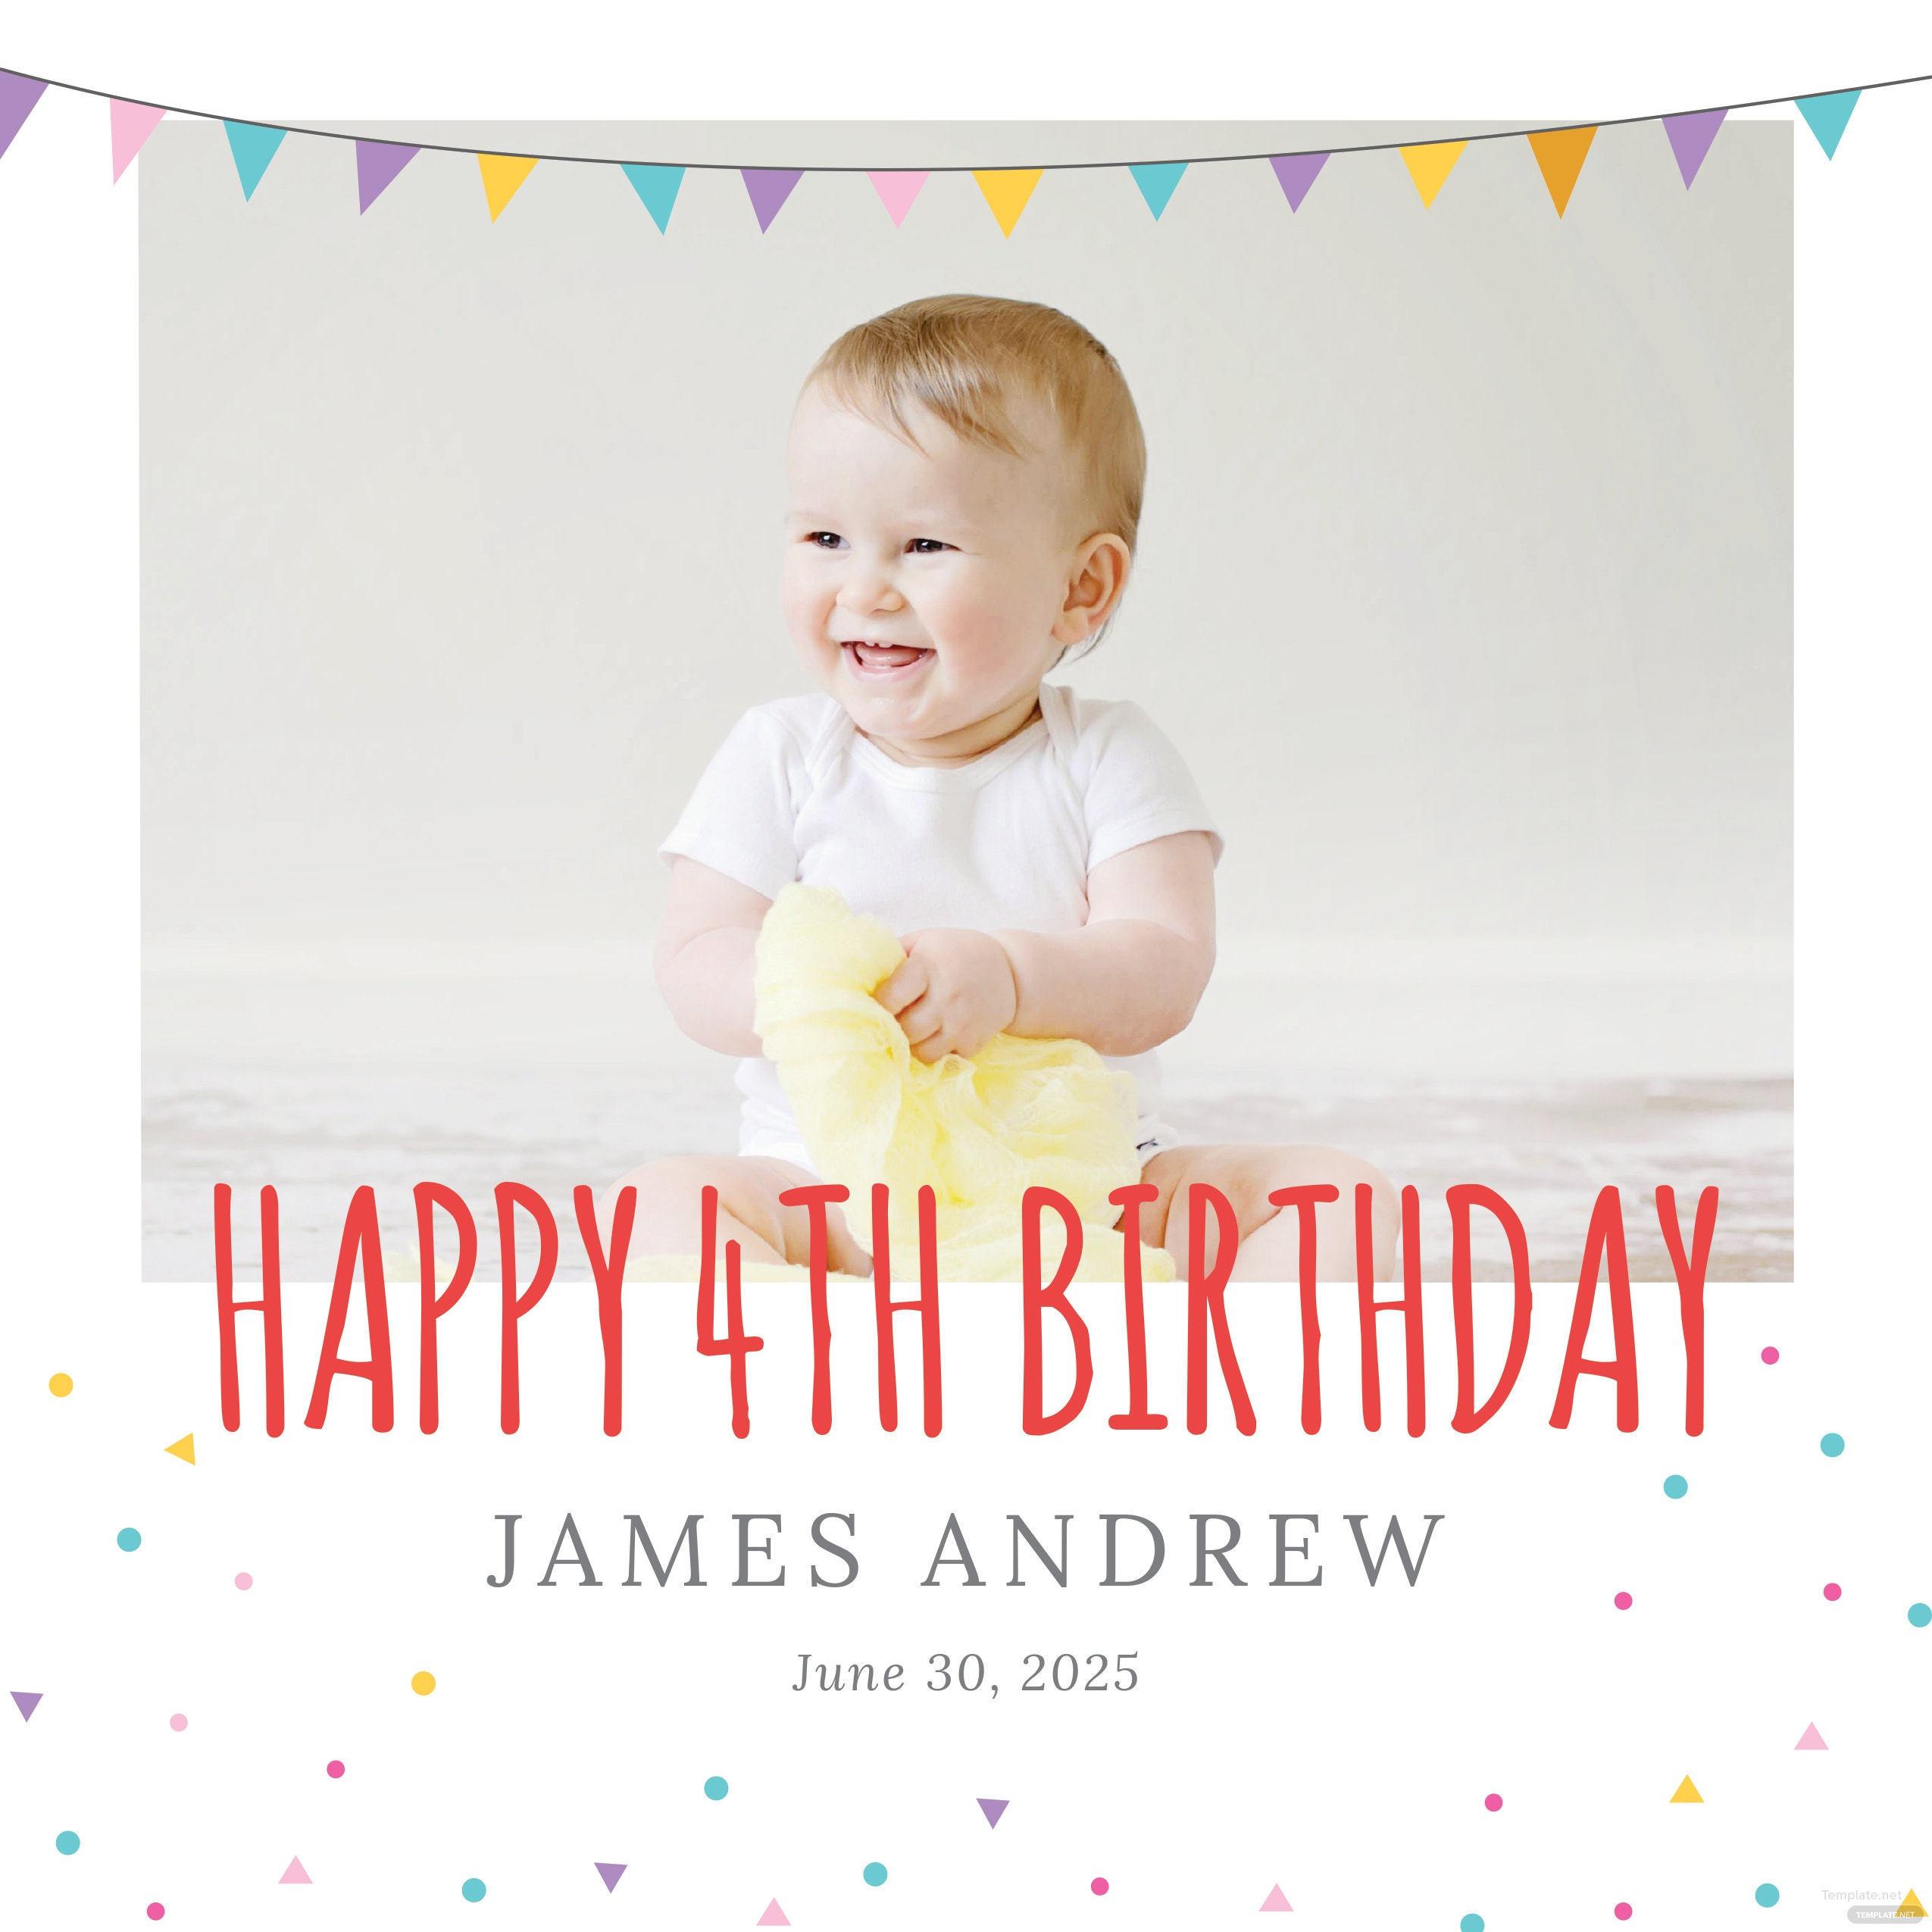 Free Birthday Photo Book Cover Template in Adobe Photoshop ...